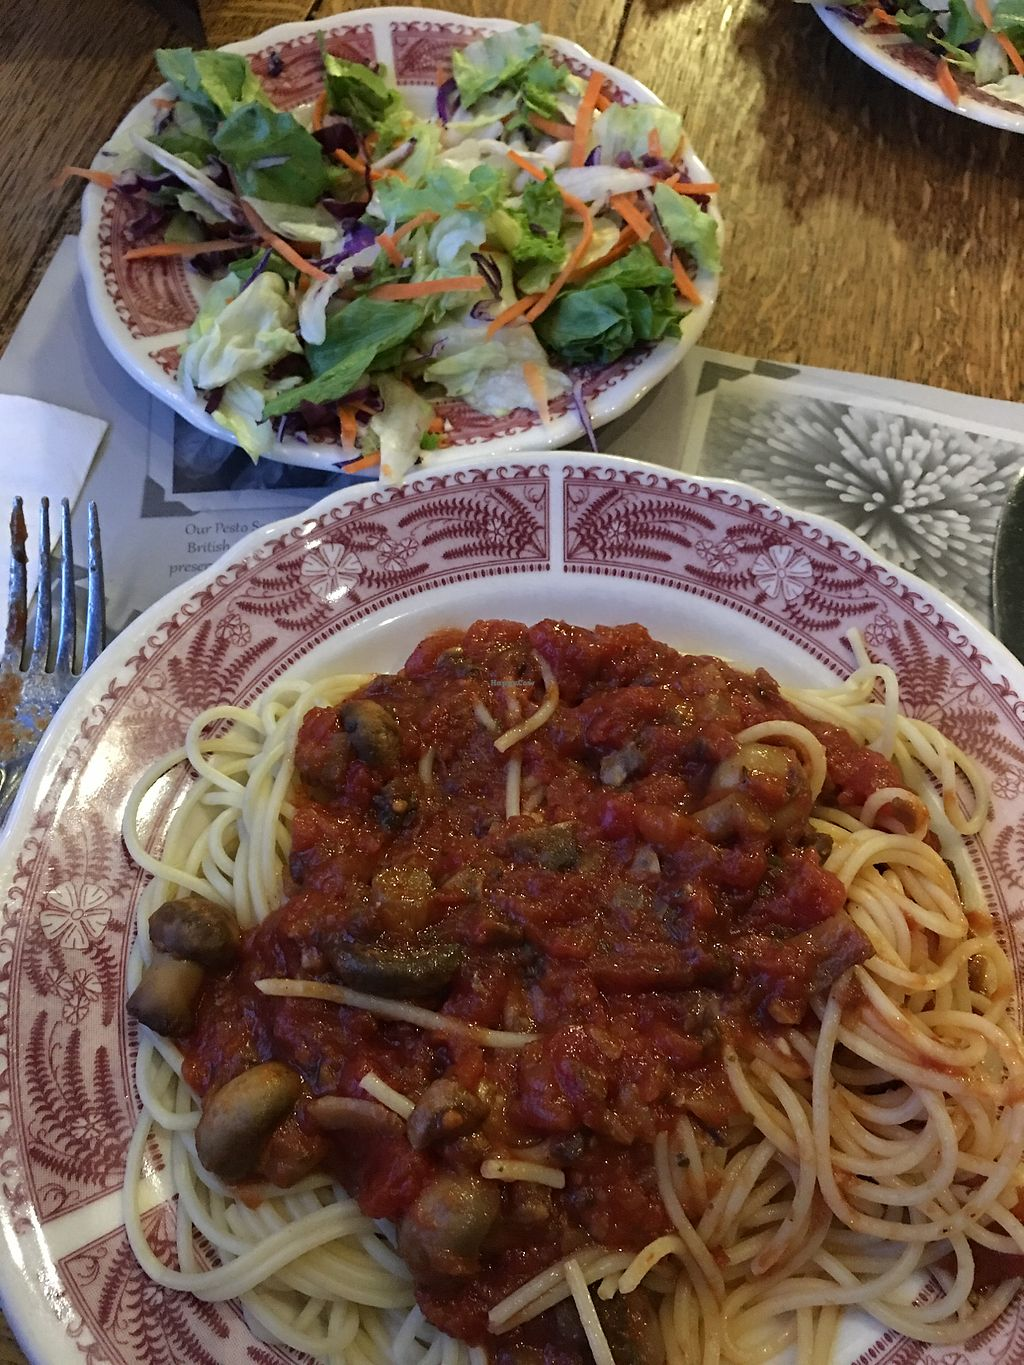 """Photo of The Old Spaghetti Factory  by <a href=""""/members/profile/marieroberts"""">marieroberts</a> <br/>Mushroom sauce and garden side salad <br/> April 29, 2018  - <a href='/contact/abuse/image/113715/392334'>Report</a>"""